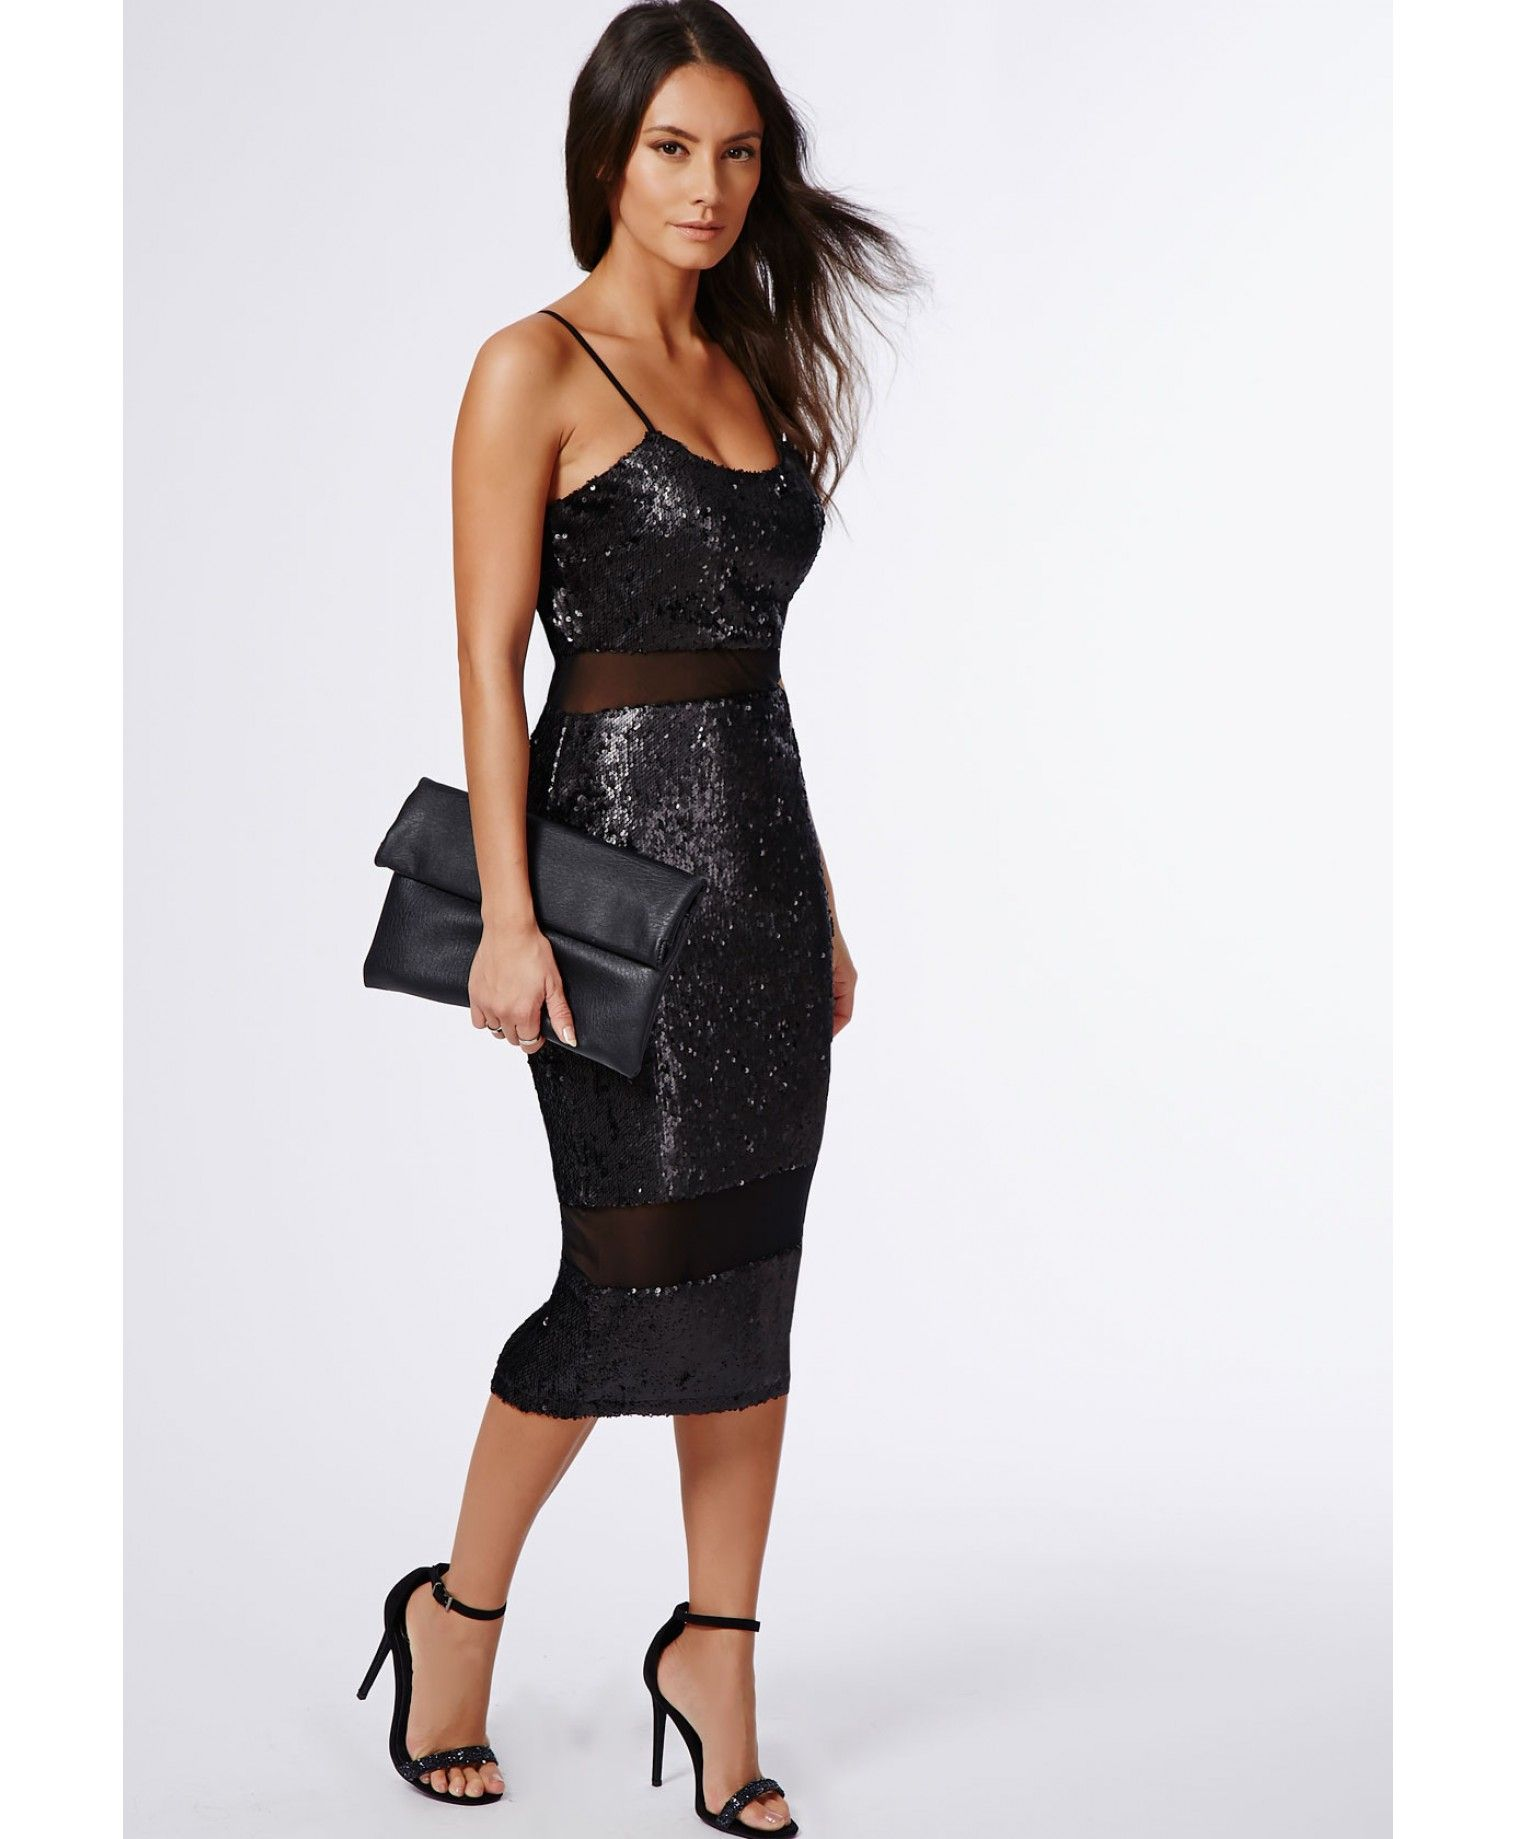 8cd68e6db03 Shilin Sequin Mesh Insert Midi Dress Black - Dresses - Midi Dresses -  Missguided